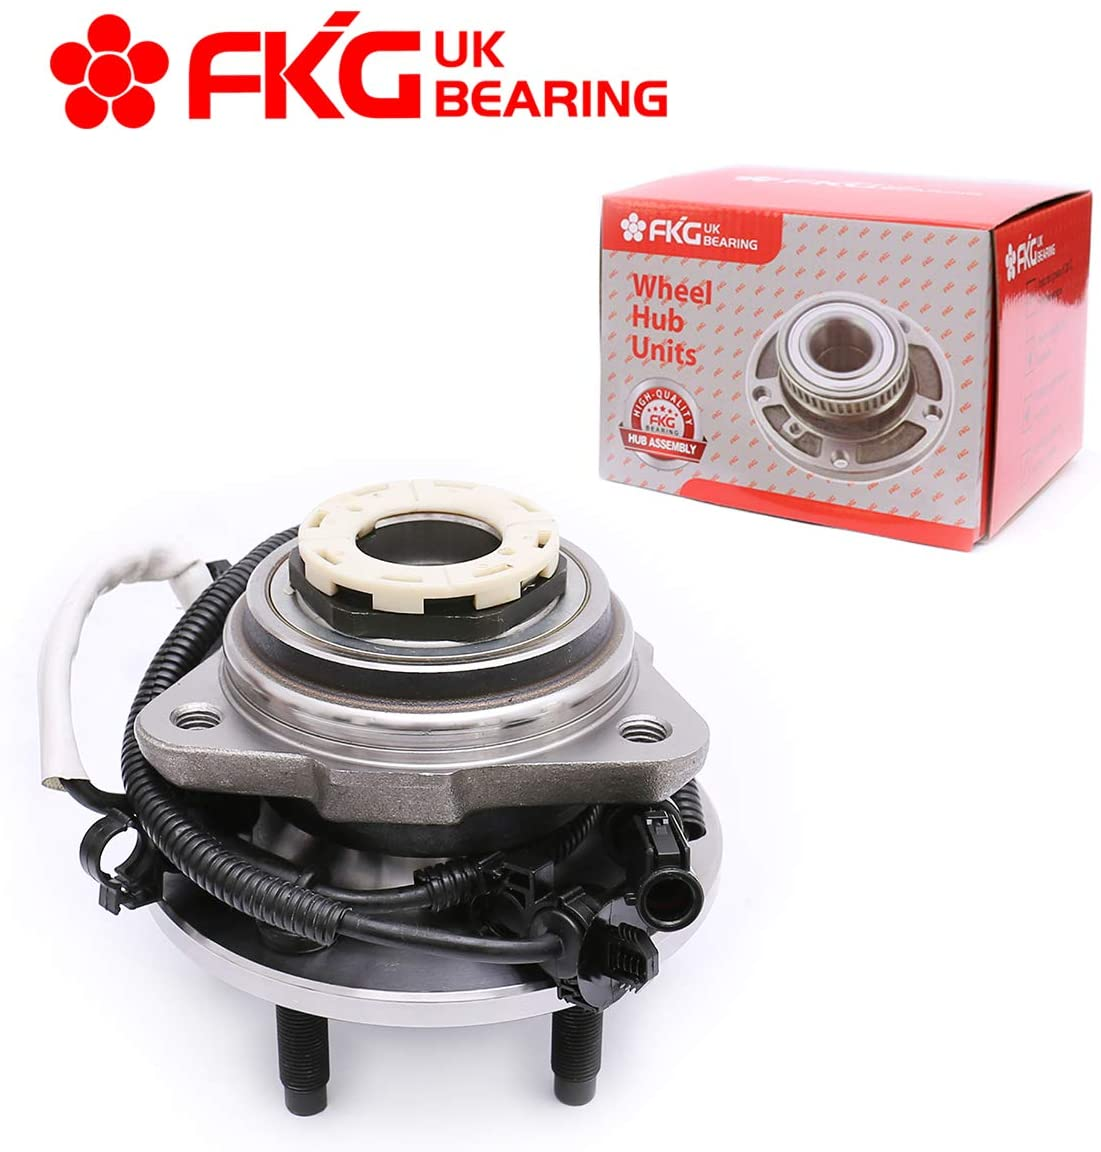 FKG 515027 (4WD Only) Front Wheel Bearing Hub Assembly fit for 1998-1999 Ford Ranger, 1998-1999 Mazda B4000, 2000 Ford Ranger Mazda B4000 (w/Pulse Vacuum Hub Locks & 4-Wheel ABS models)